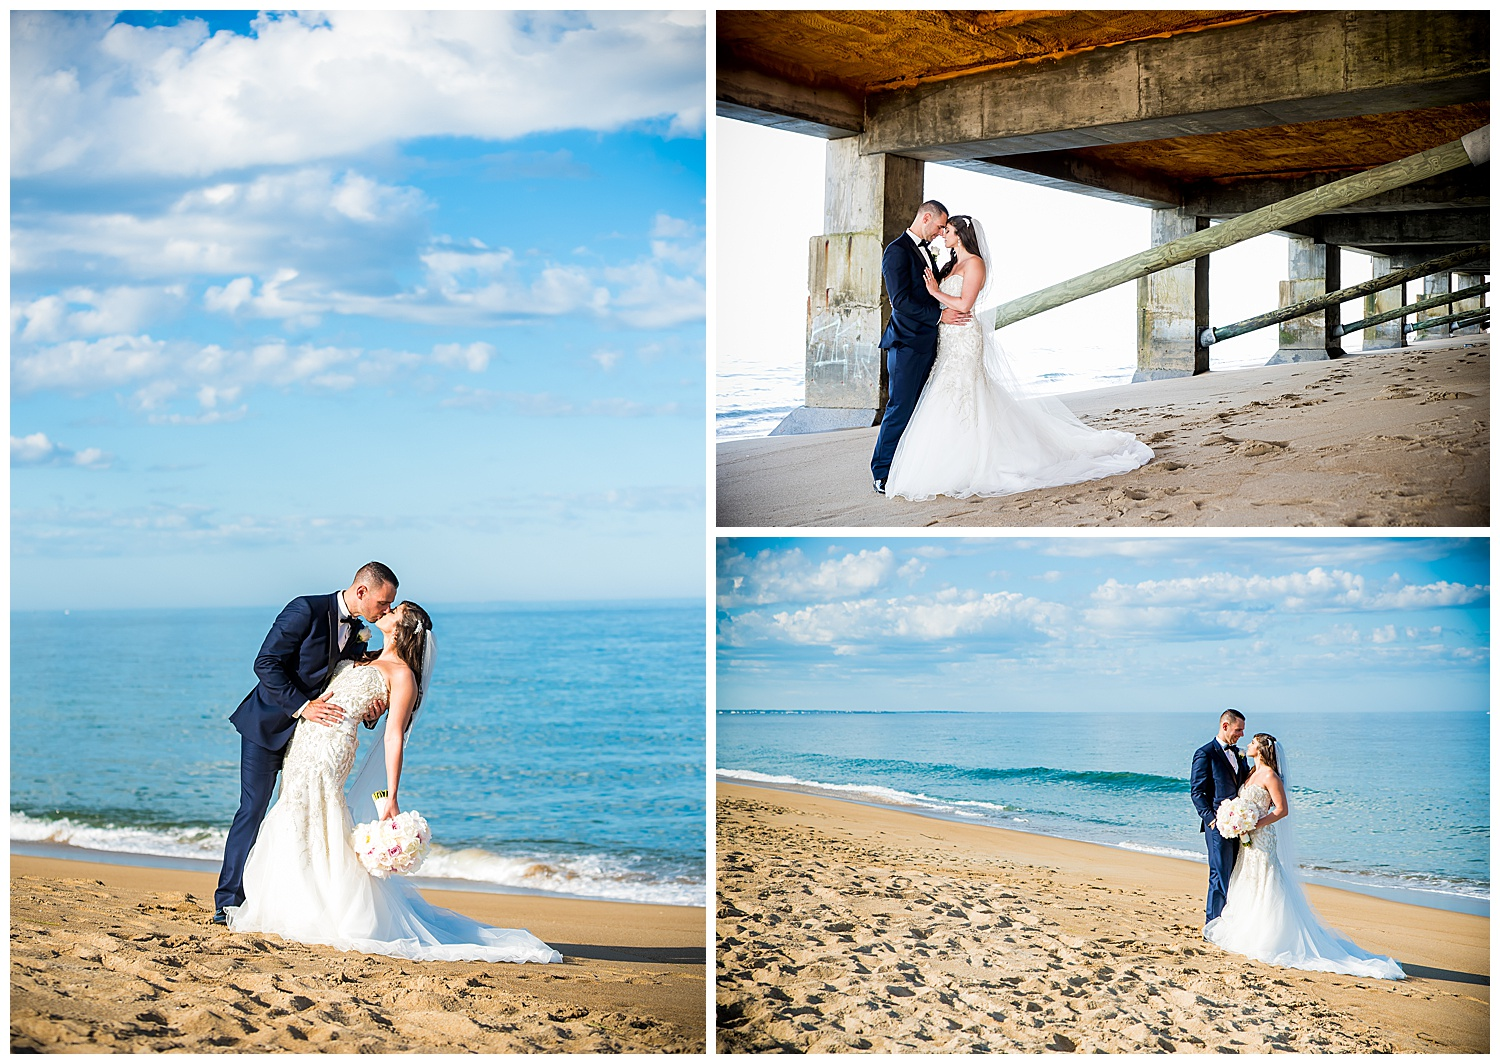 Blue Ocean Event Center - Bride & Groom Portraits